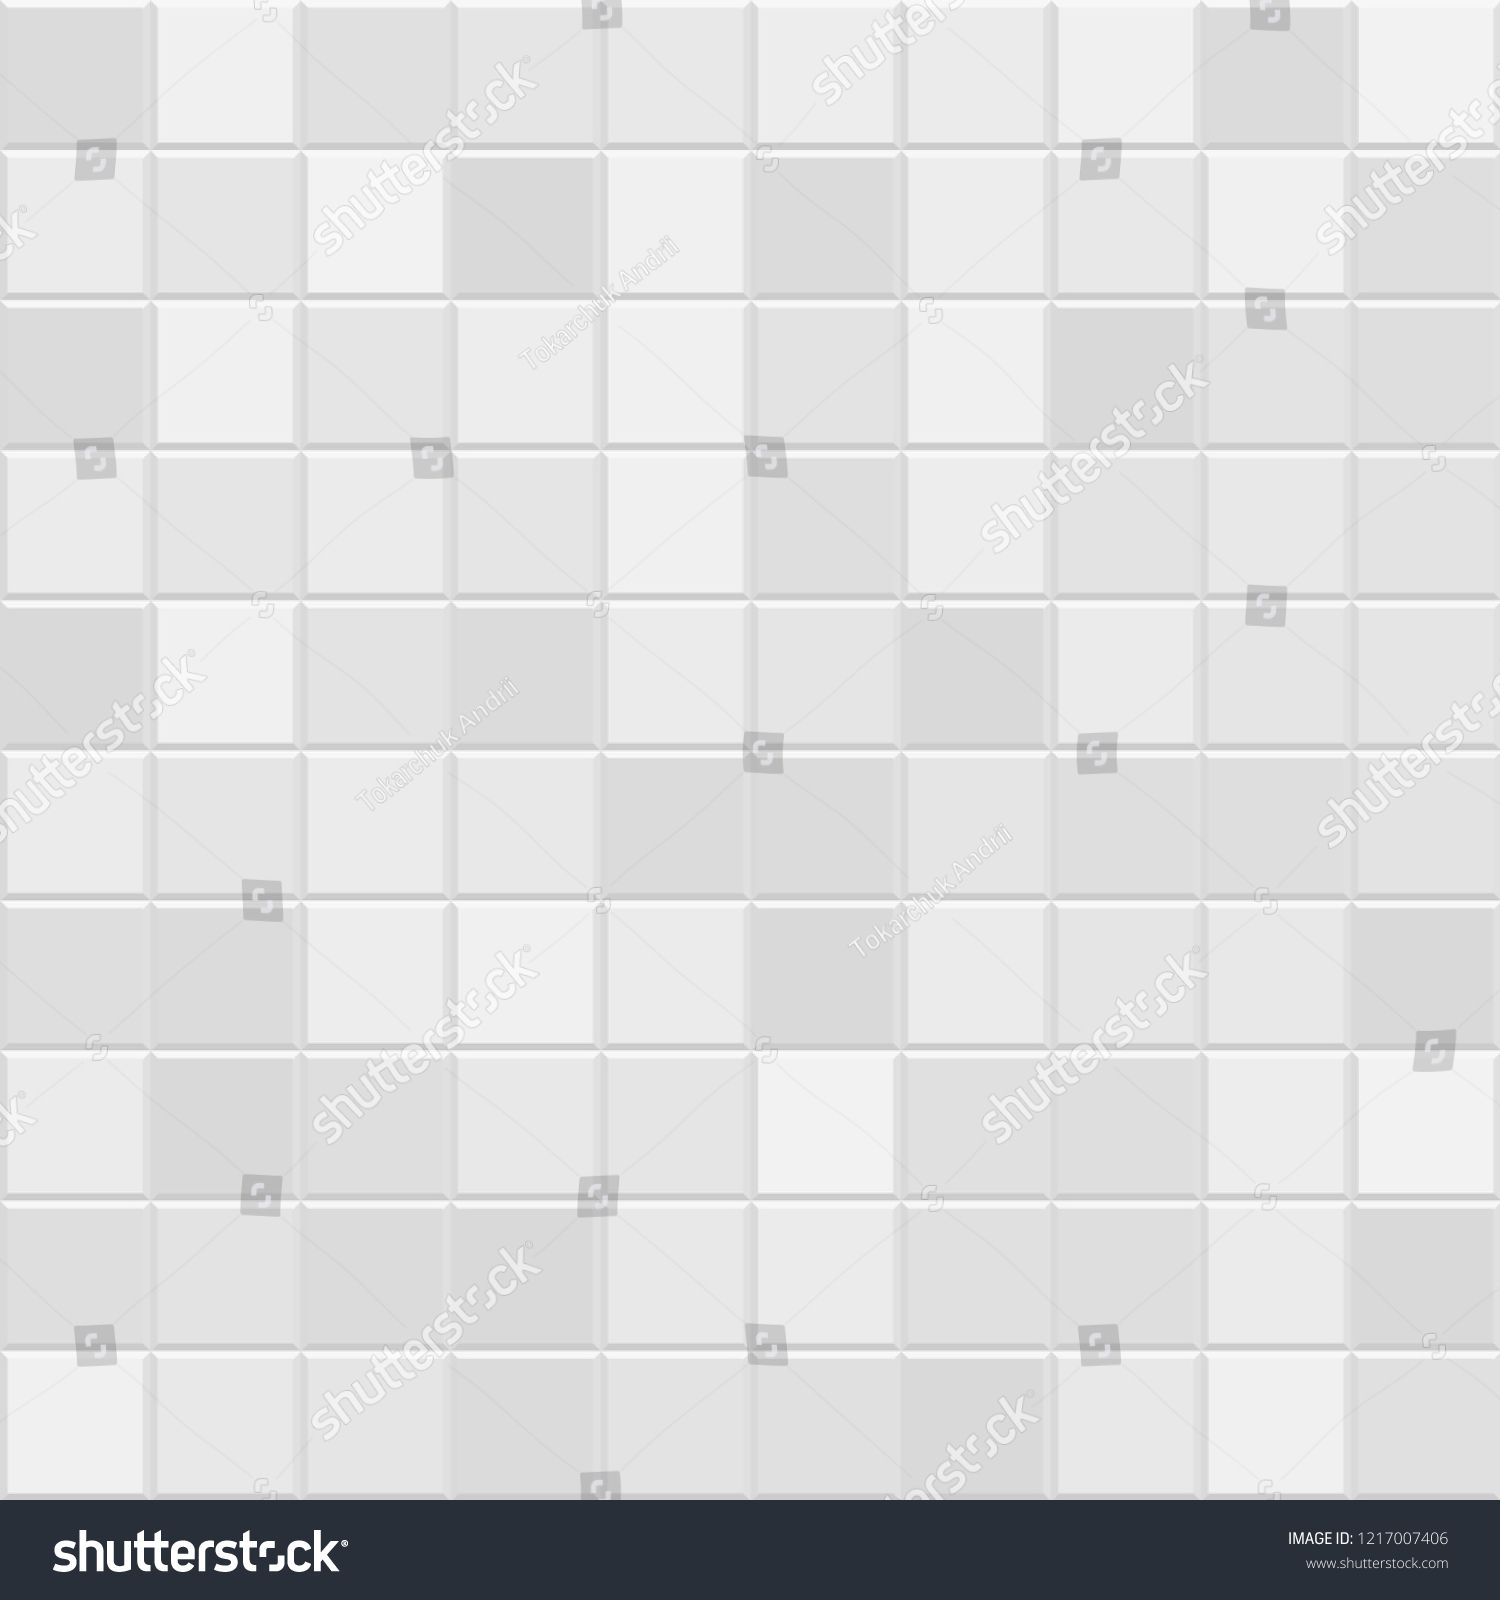 Grey Square Mosaic Tiles Background Background With Abstract